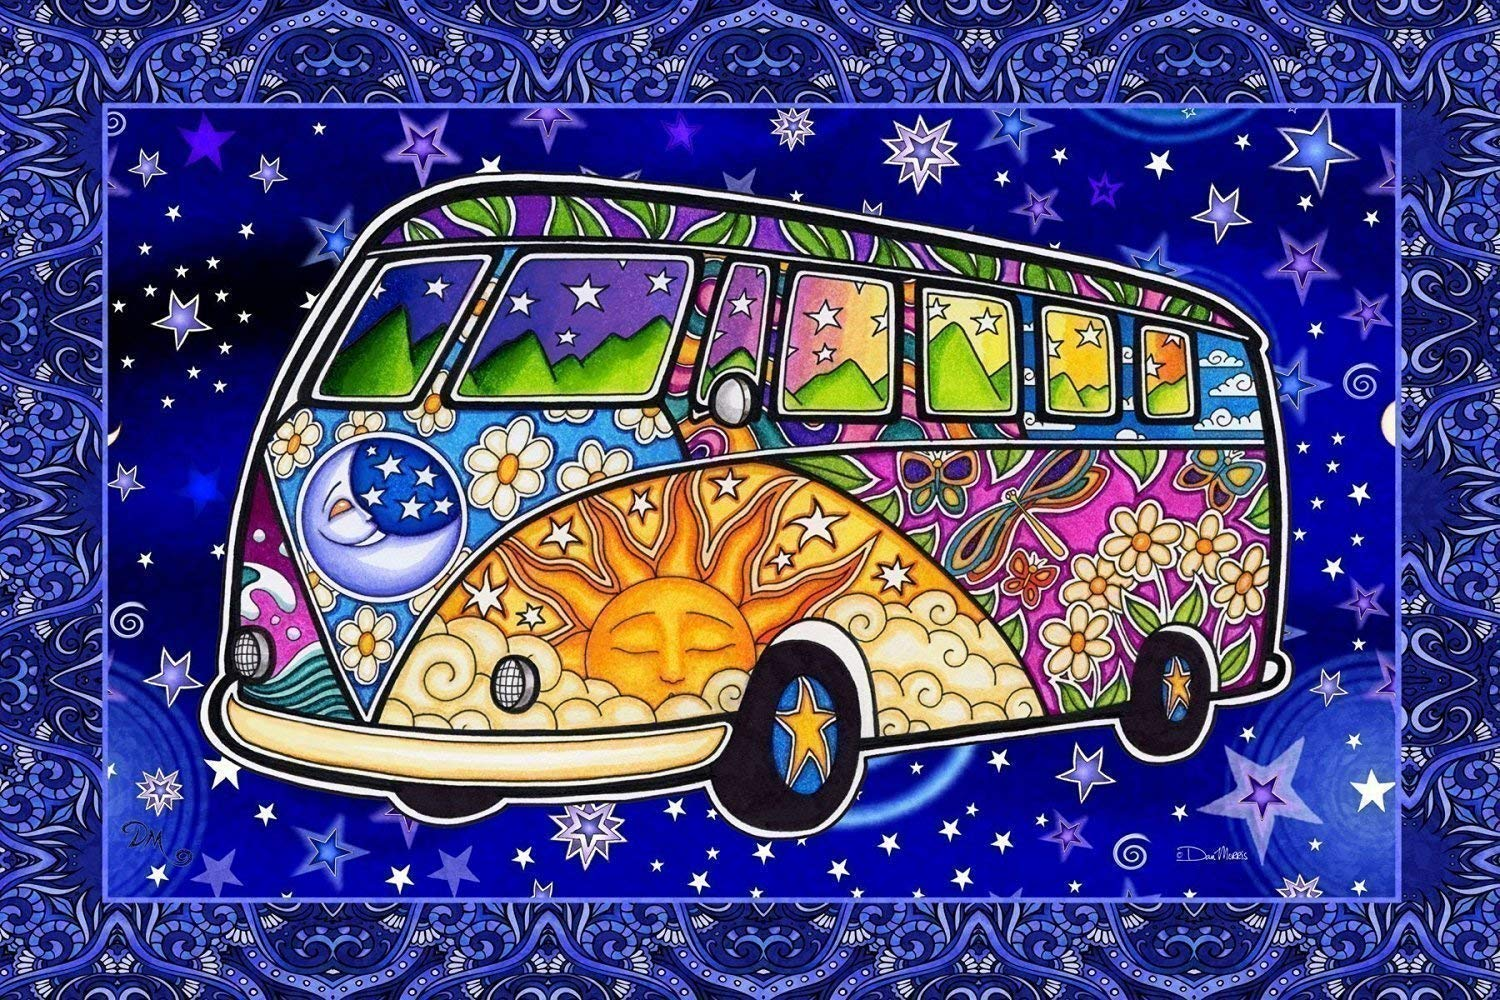 Hippie Bus Peace 25% OFF Road Trip Morris Super beauty product restock quality top Tapestry Dan by